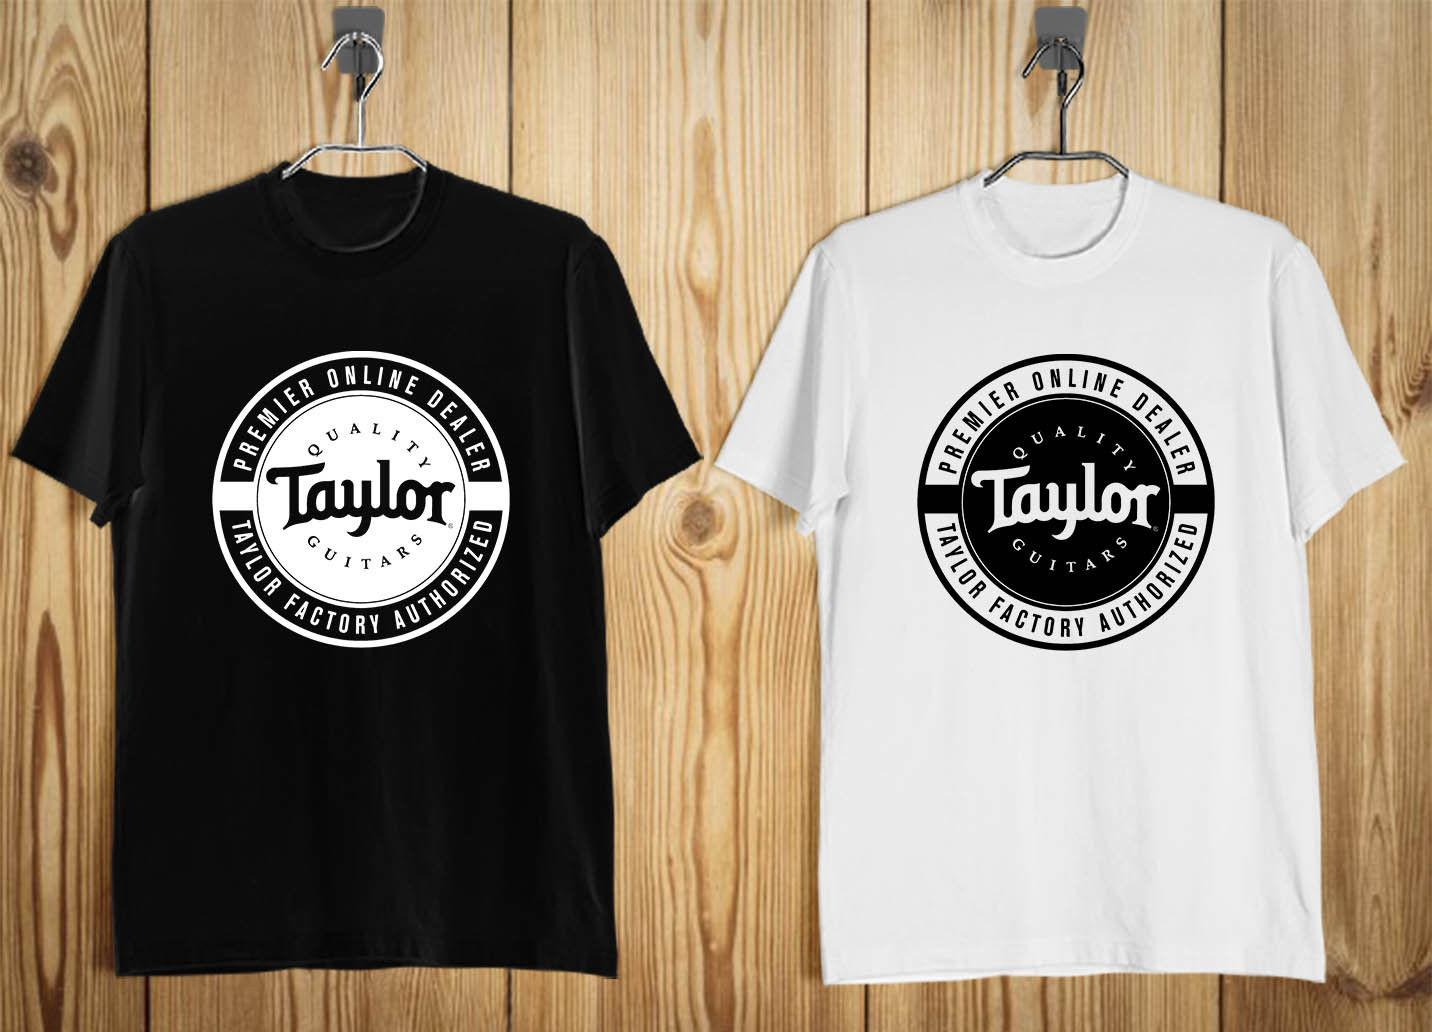 Taylor Guitar Logo Men s T-Shirt Black White S-2XLFunny free shipping  Unisex Casual Tshirt top